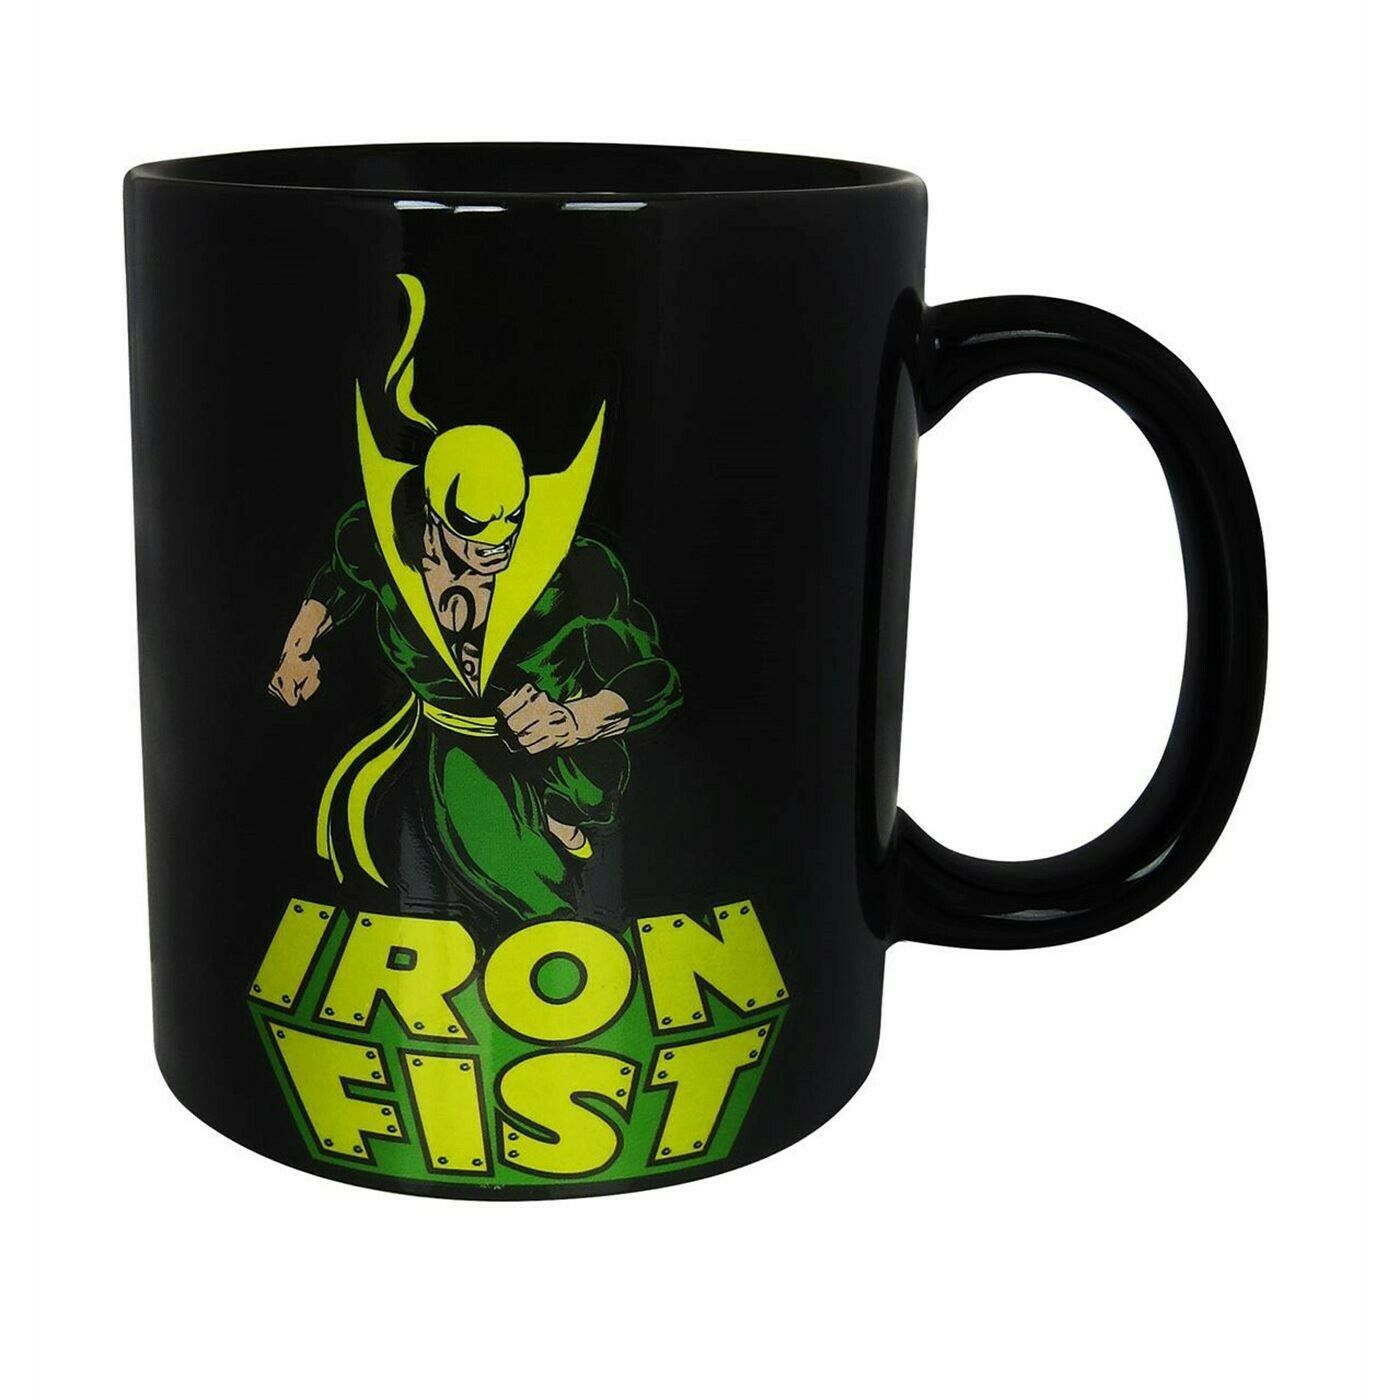 Primary image for Iron Fist Image 11oz Mug Black